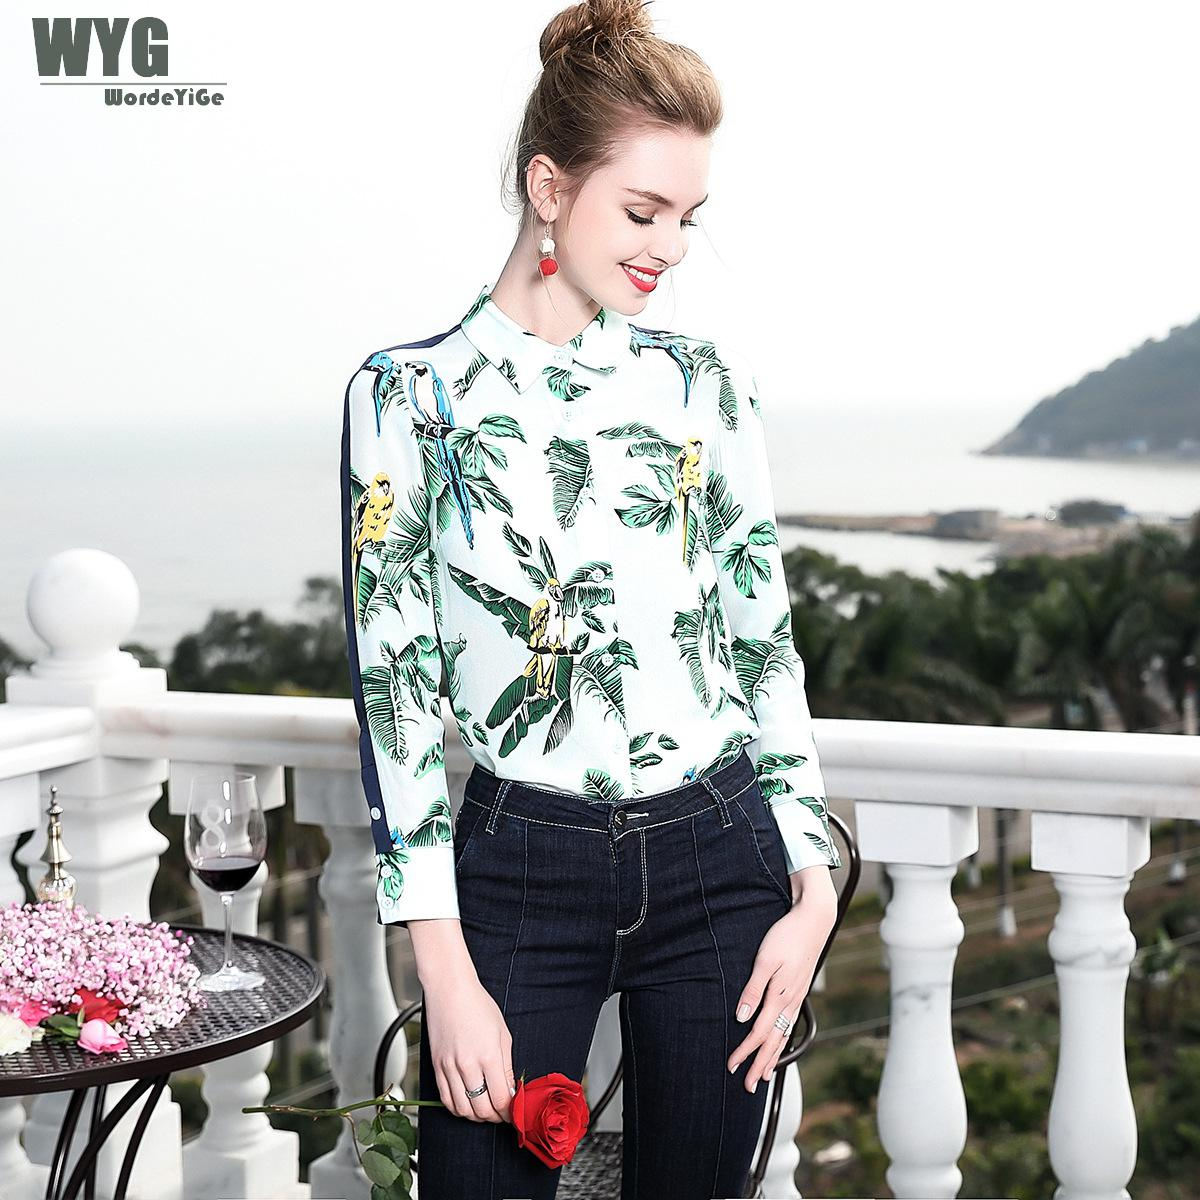 WYG Women Luxury Blouse 2018 Spring New Banana Leaf Birds Printed Long Sleeve Contrasting Red Blue Patchwork Fashion Silk Shirts kiind of new blue women s xl geometric printed sheer cropped blouse $49 016